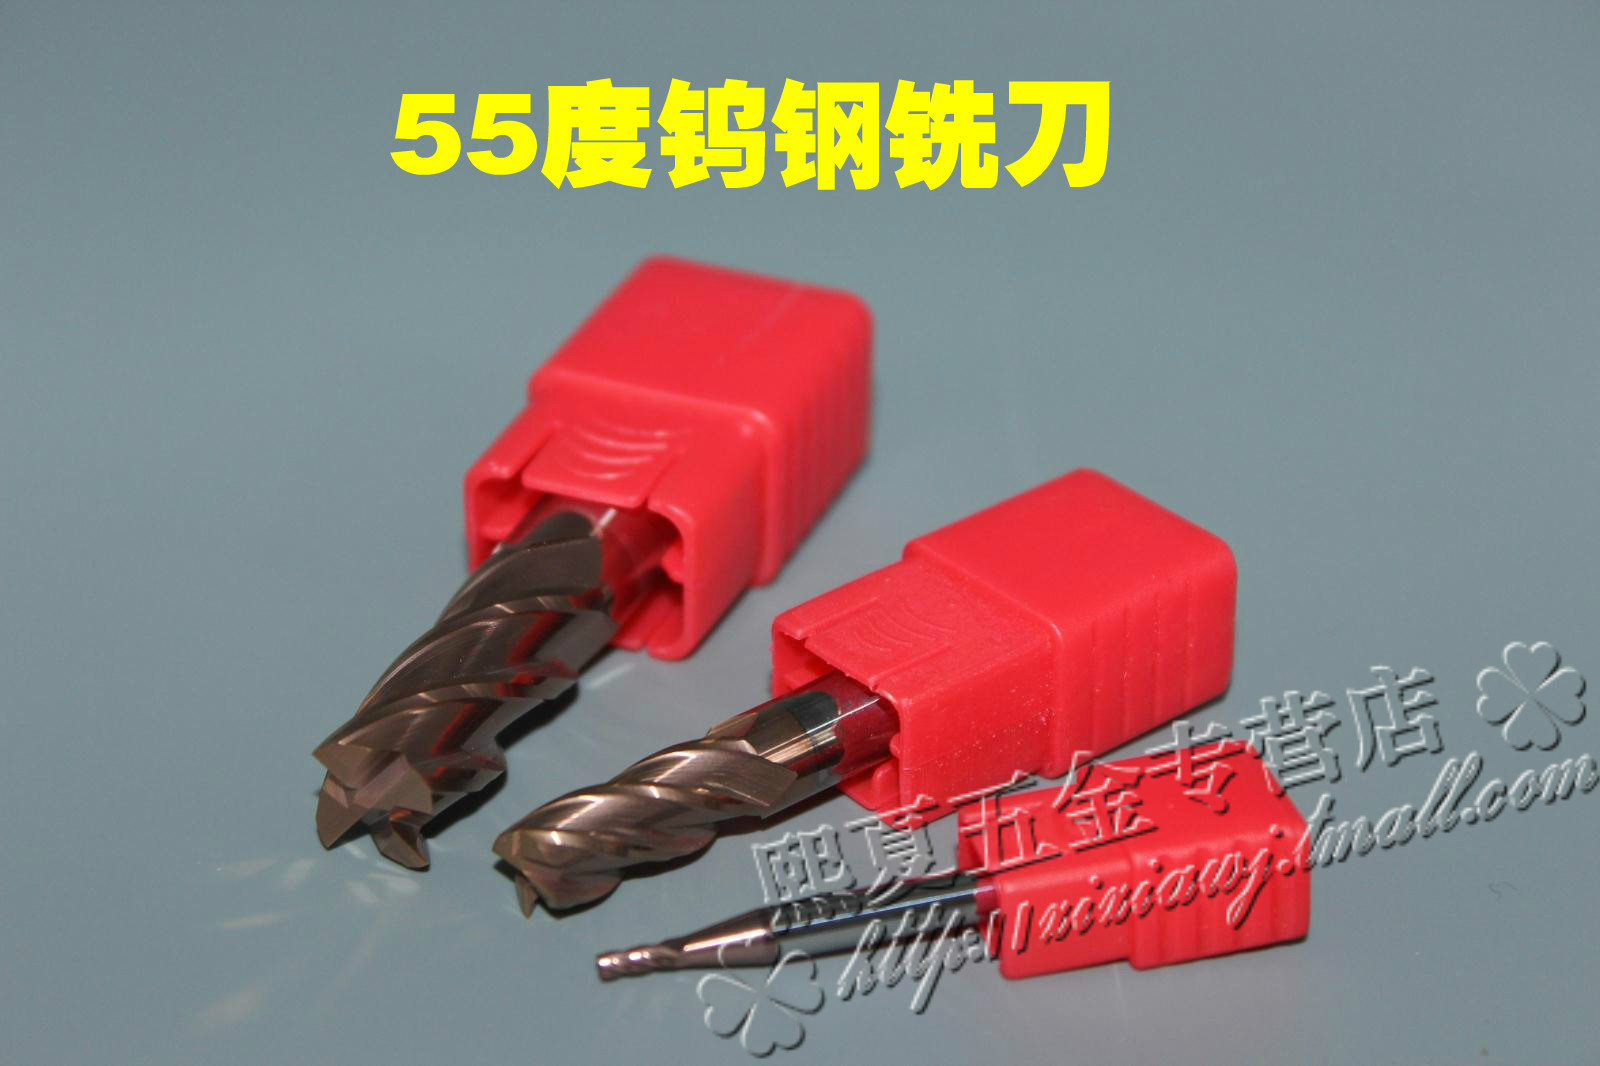 Coated tungsten steel cutter 55 degrees ultrafine particles of solid carbide cnc blade cutter four standard cutter